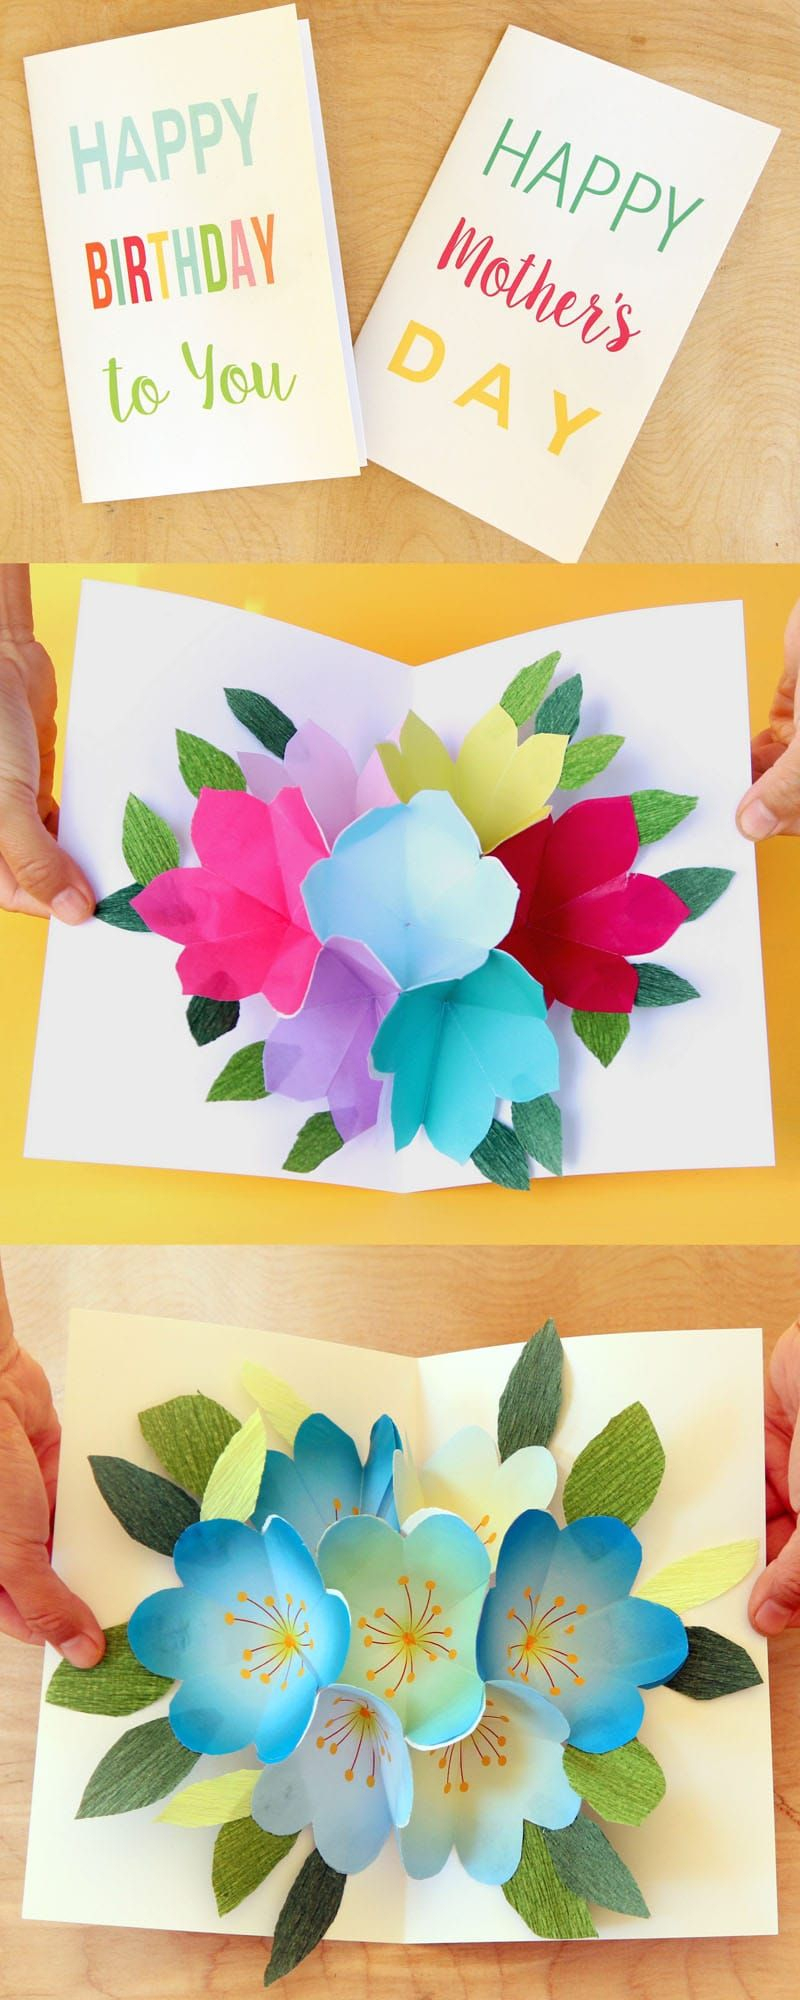 Free Printable Happy Birthday Card With Pop Up Bouquet   Printables - Free Printable Birthday Pop Up Card Templates